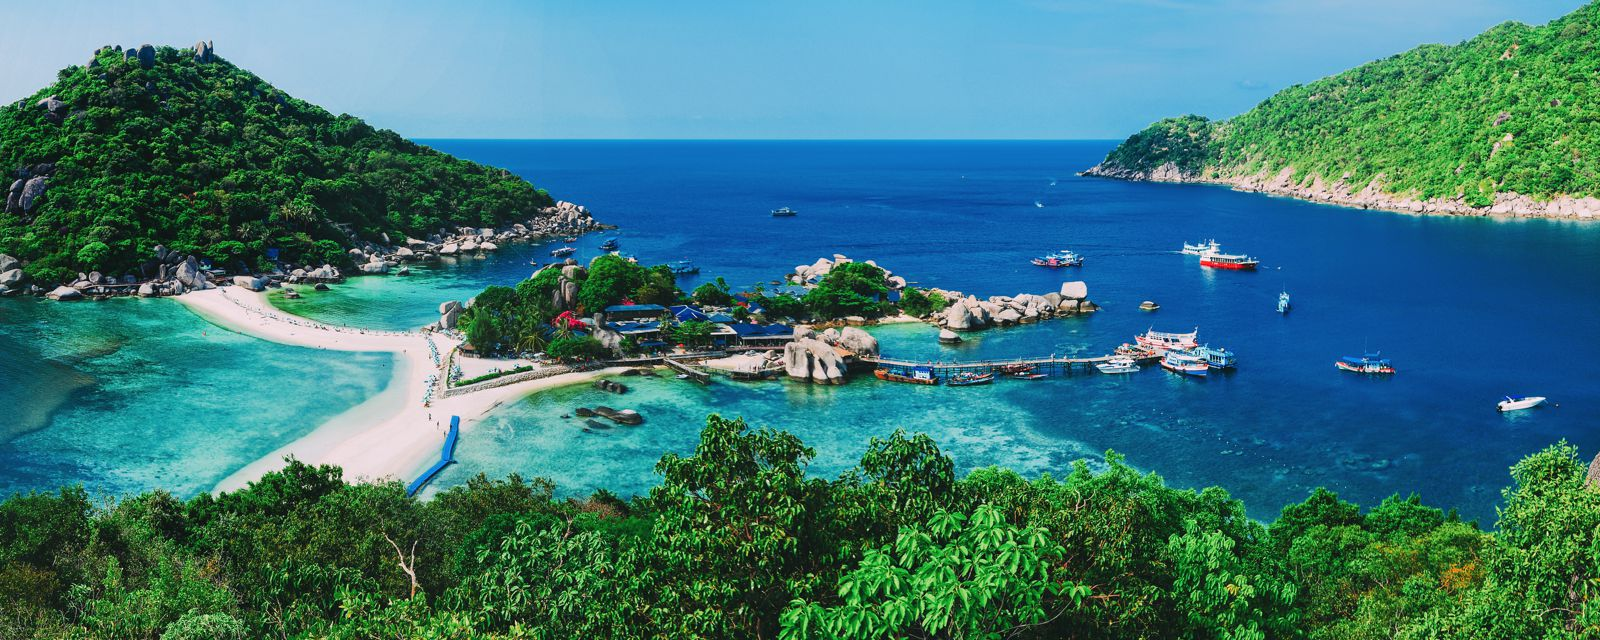 10 Stunning Beaches You Have To Visit In Thailand (5)